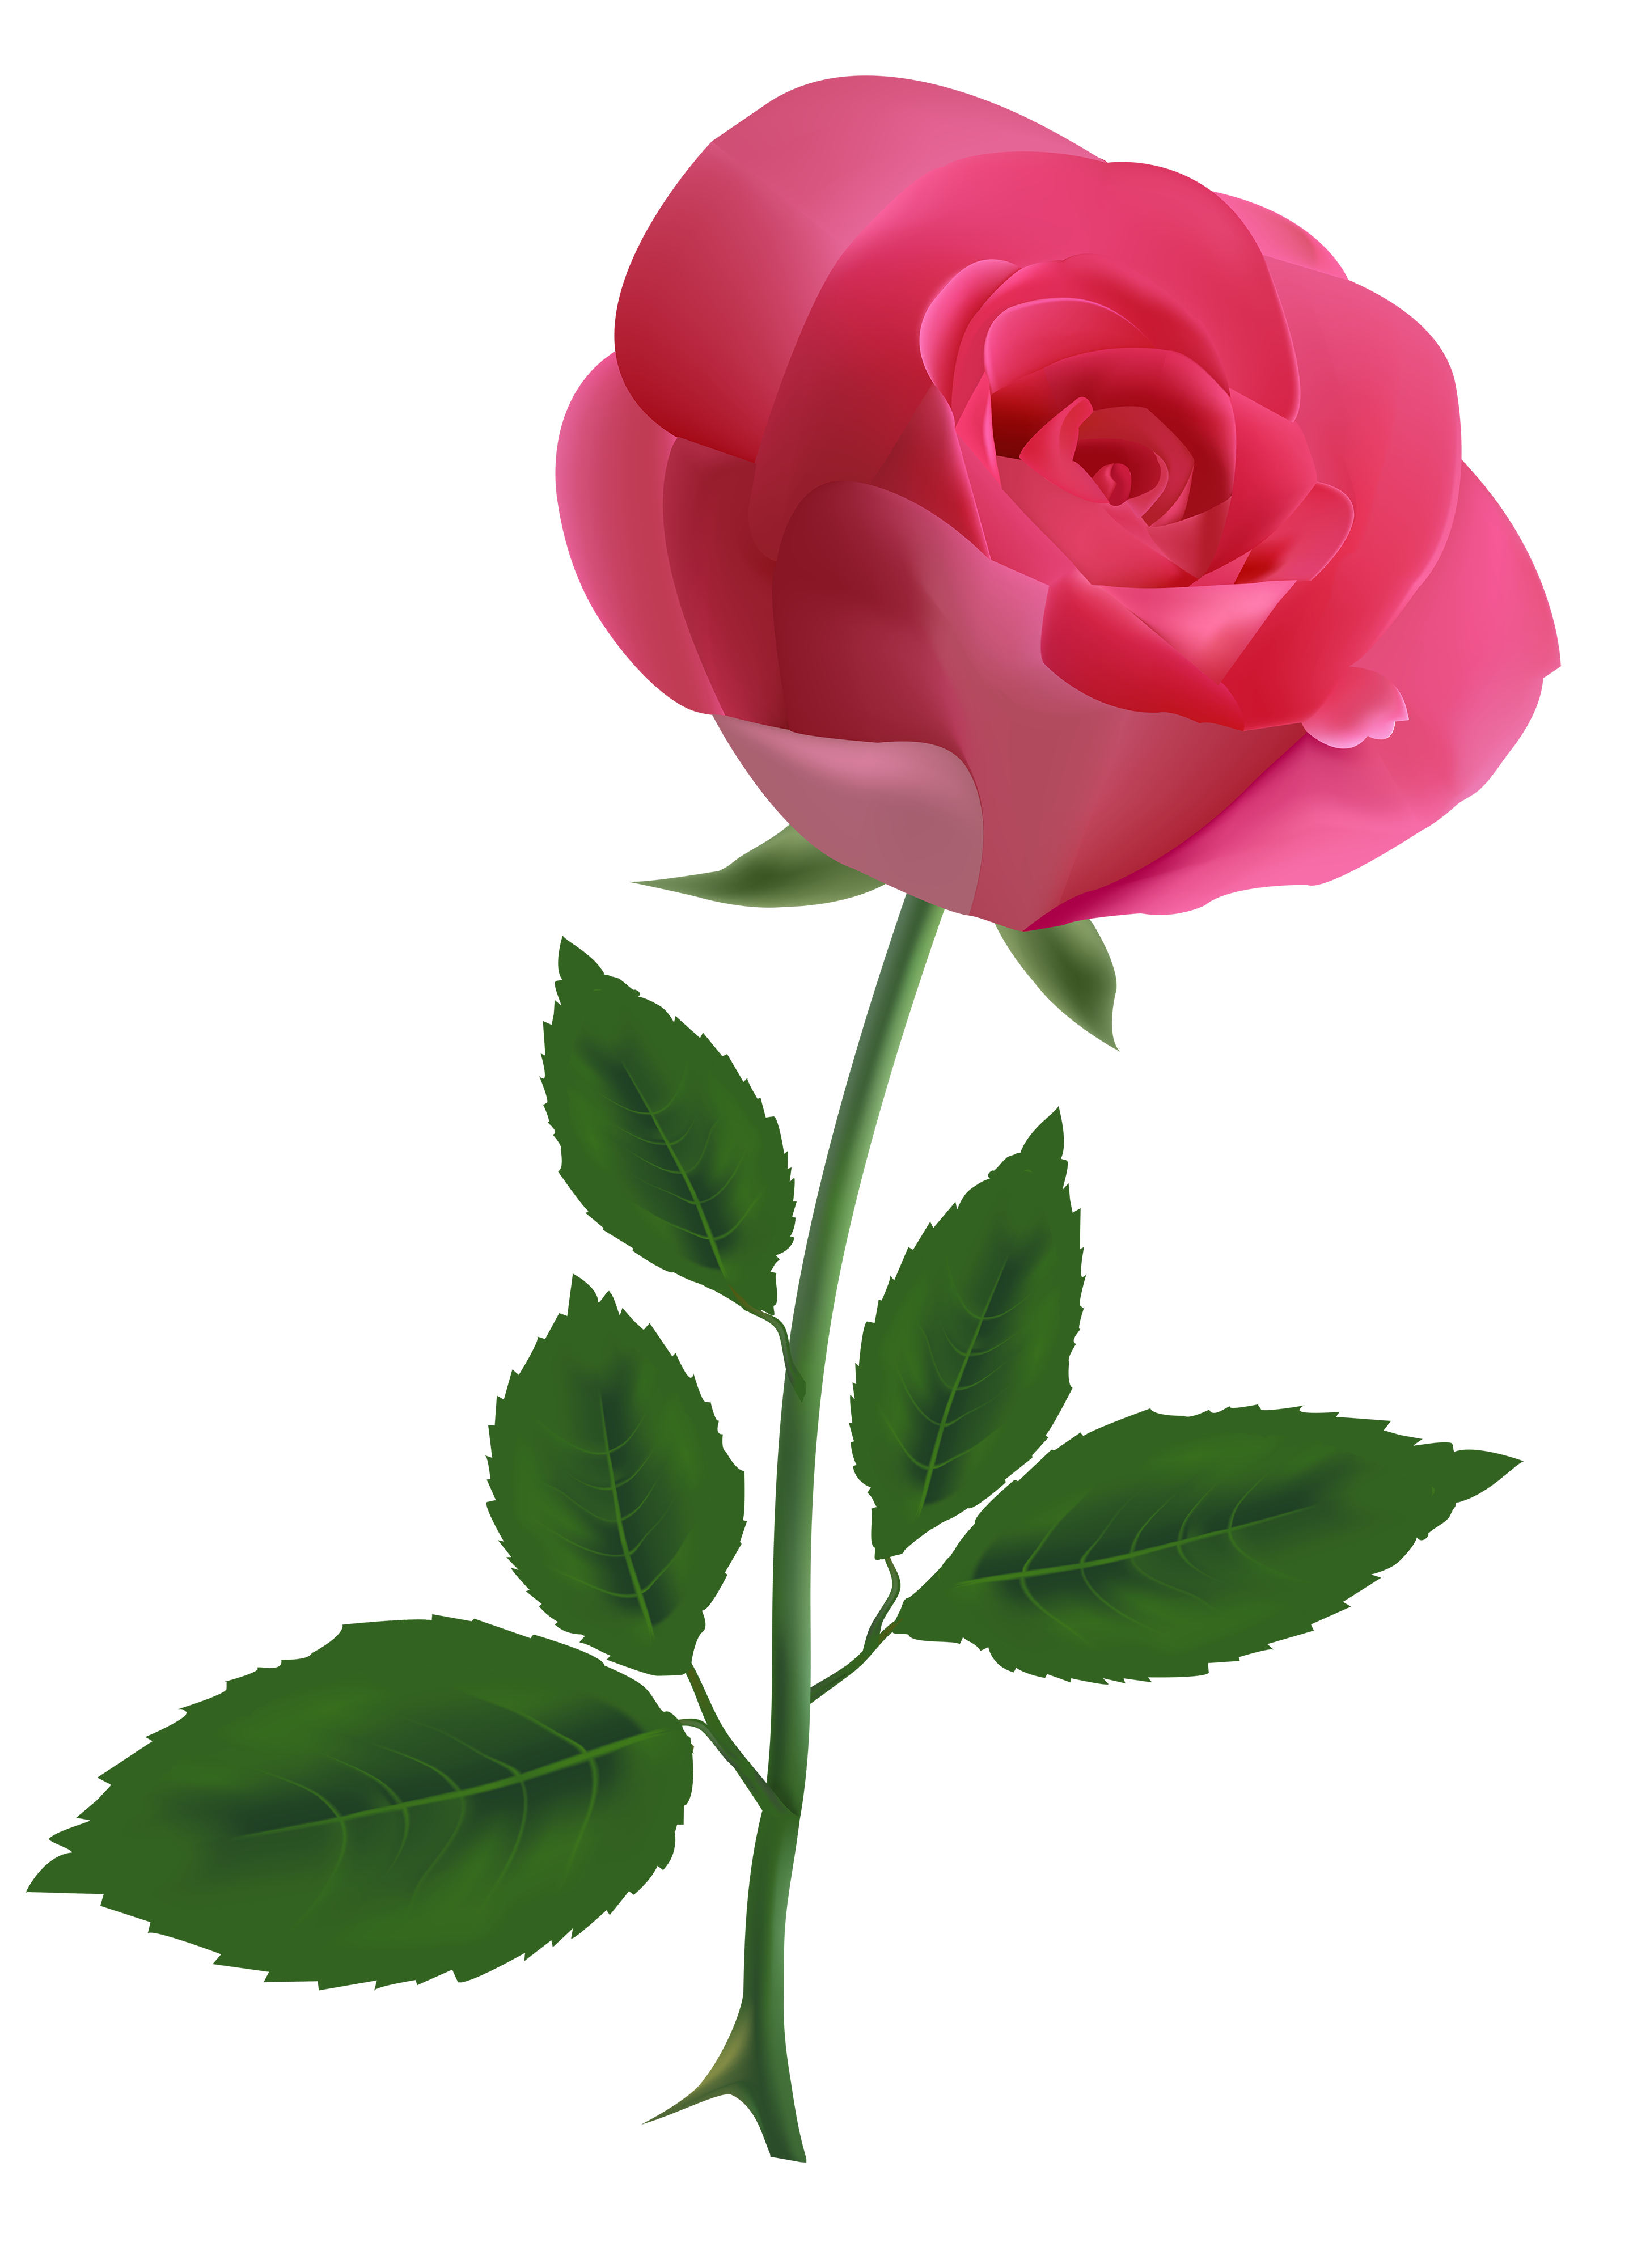 Pink Rose clipart #3, Download drawings